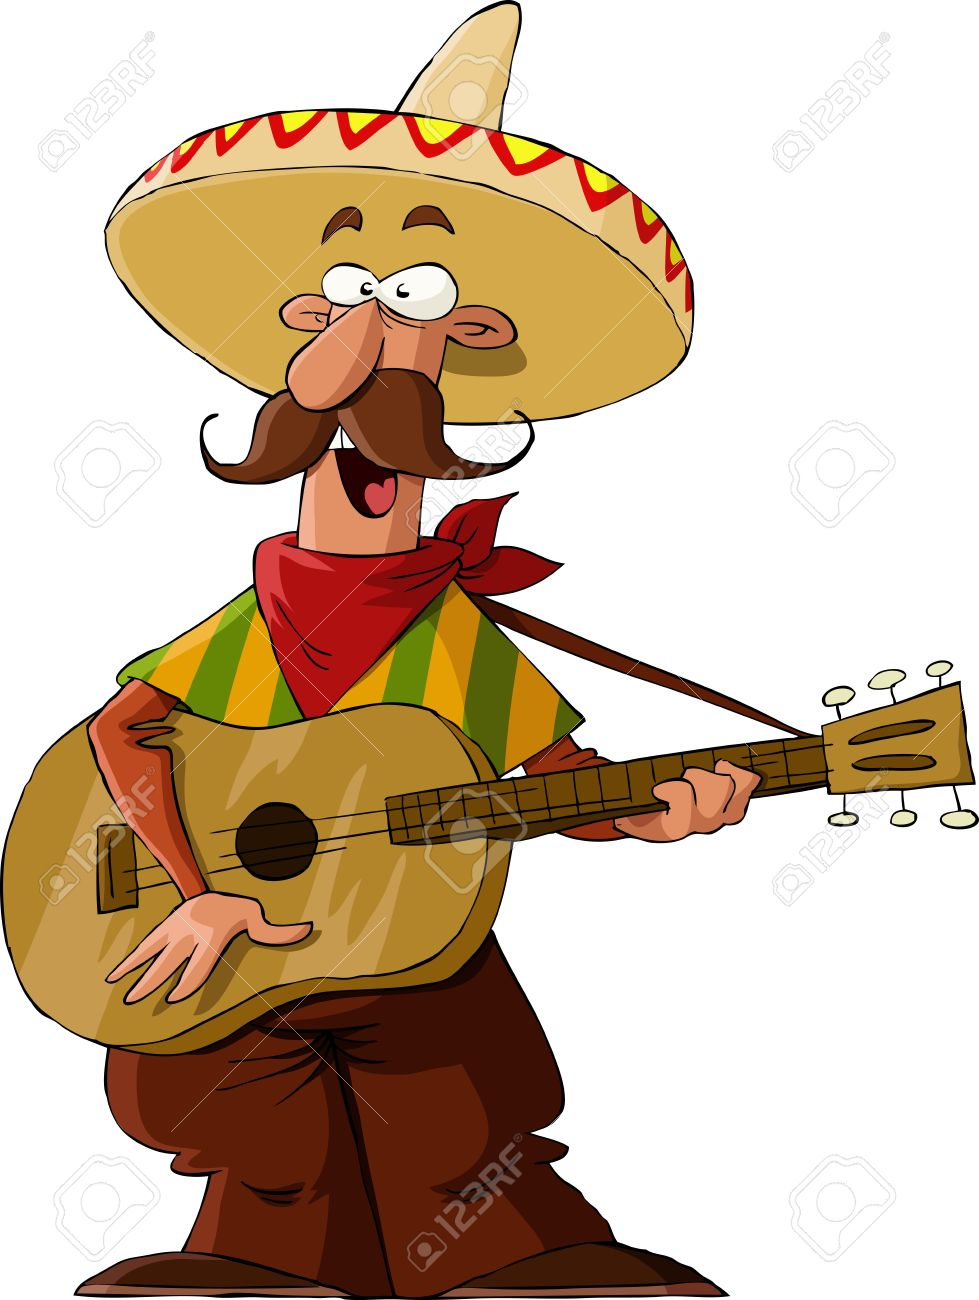 Mexican on a white background, vector illustration - 11004637